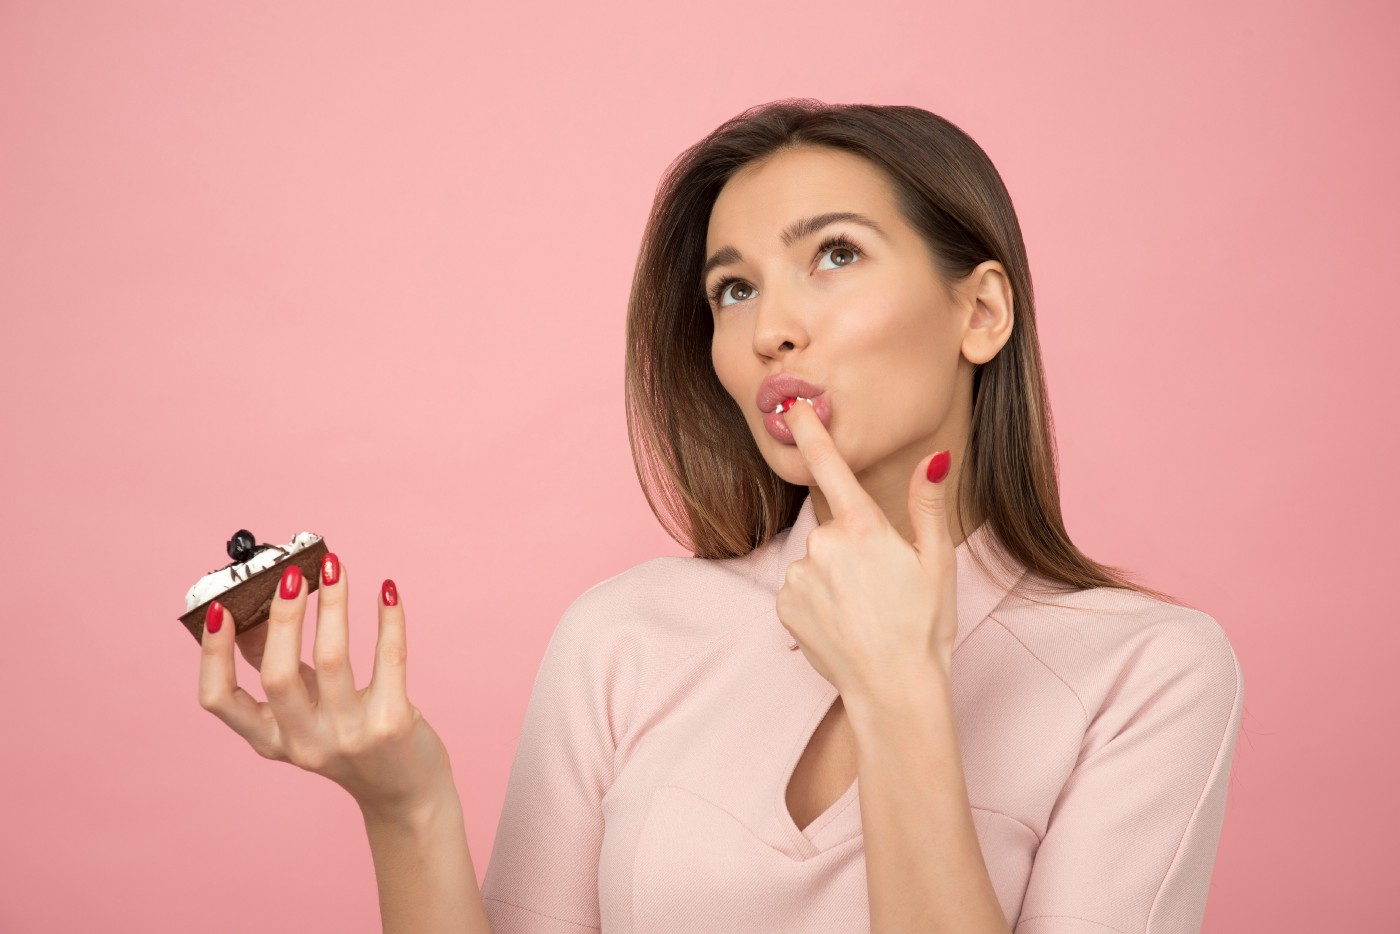 a woman holding a cupcake in one hand, her other hand has a finger in her mouth from tasting the frosting and she is looking up signaling enjoyment and thinking